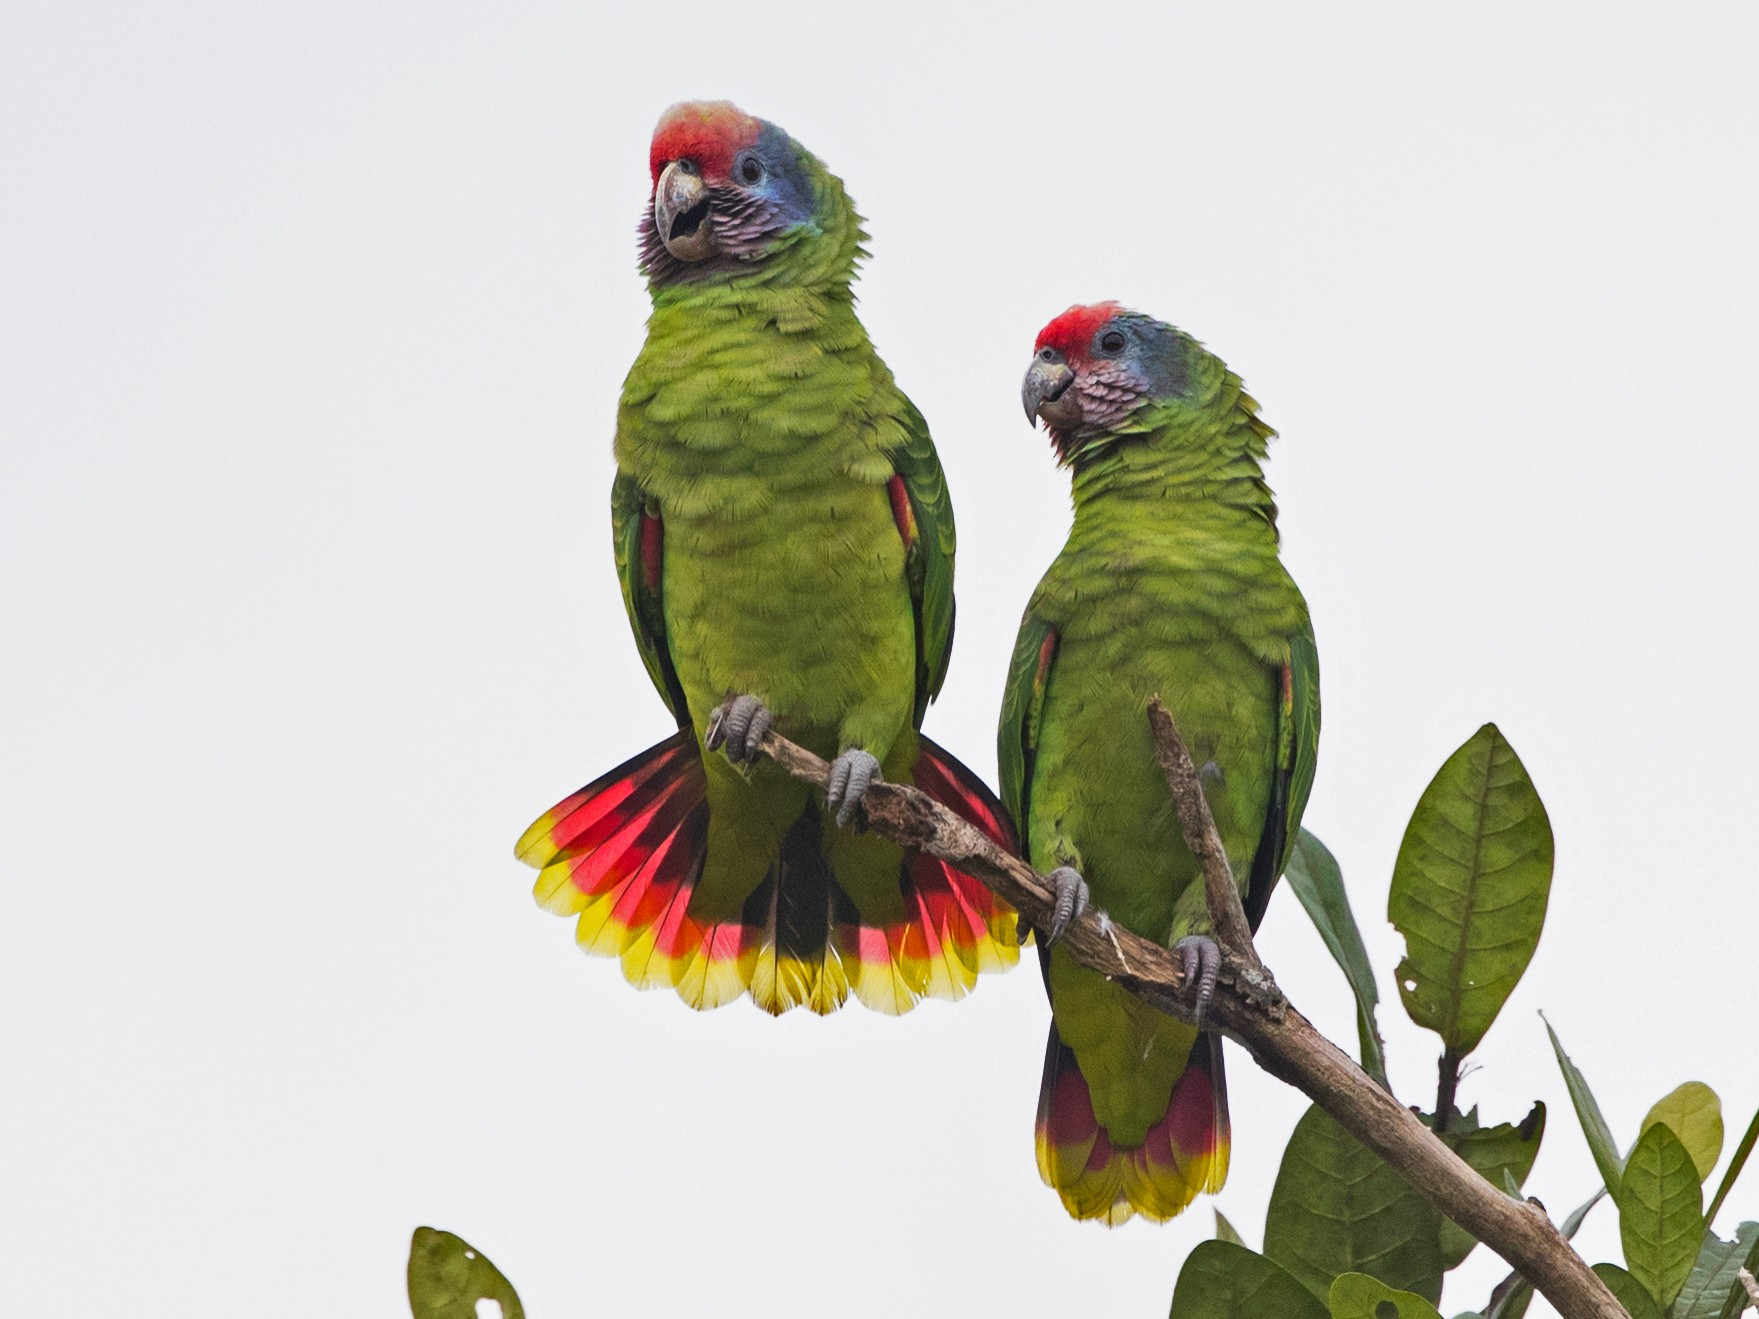 Red-tailed Parrot - Ciro Albano